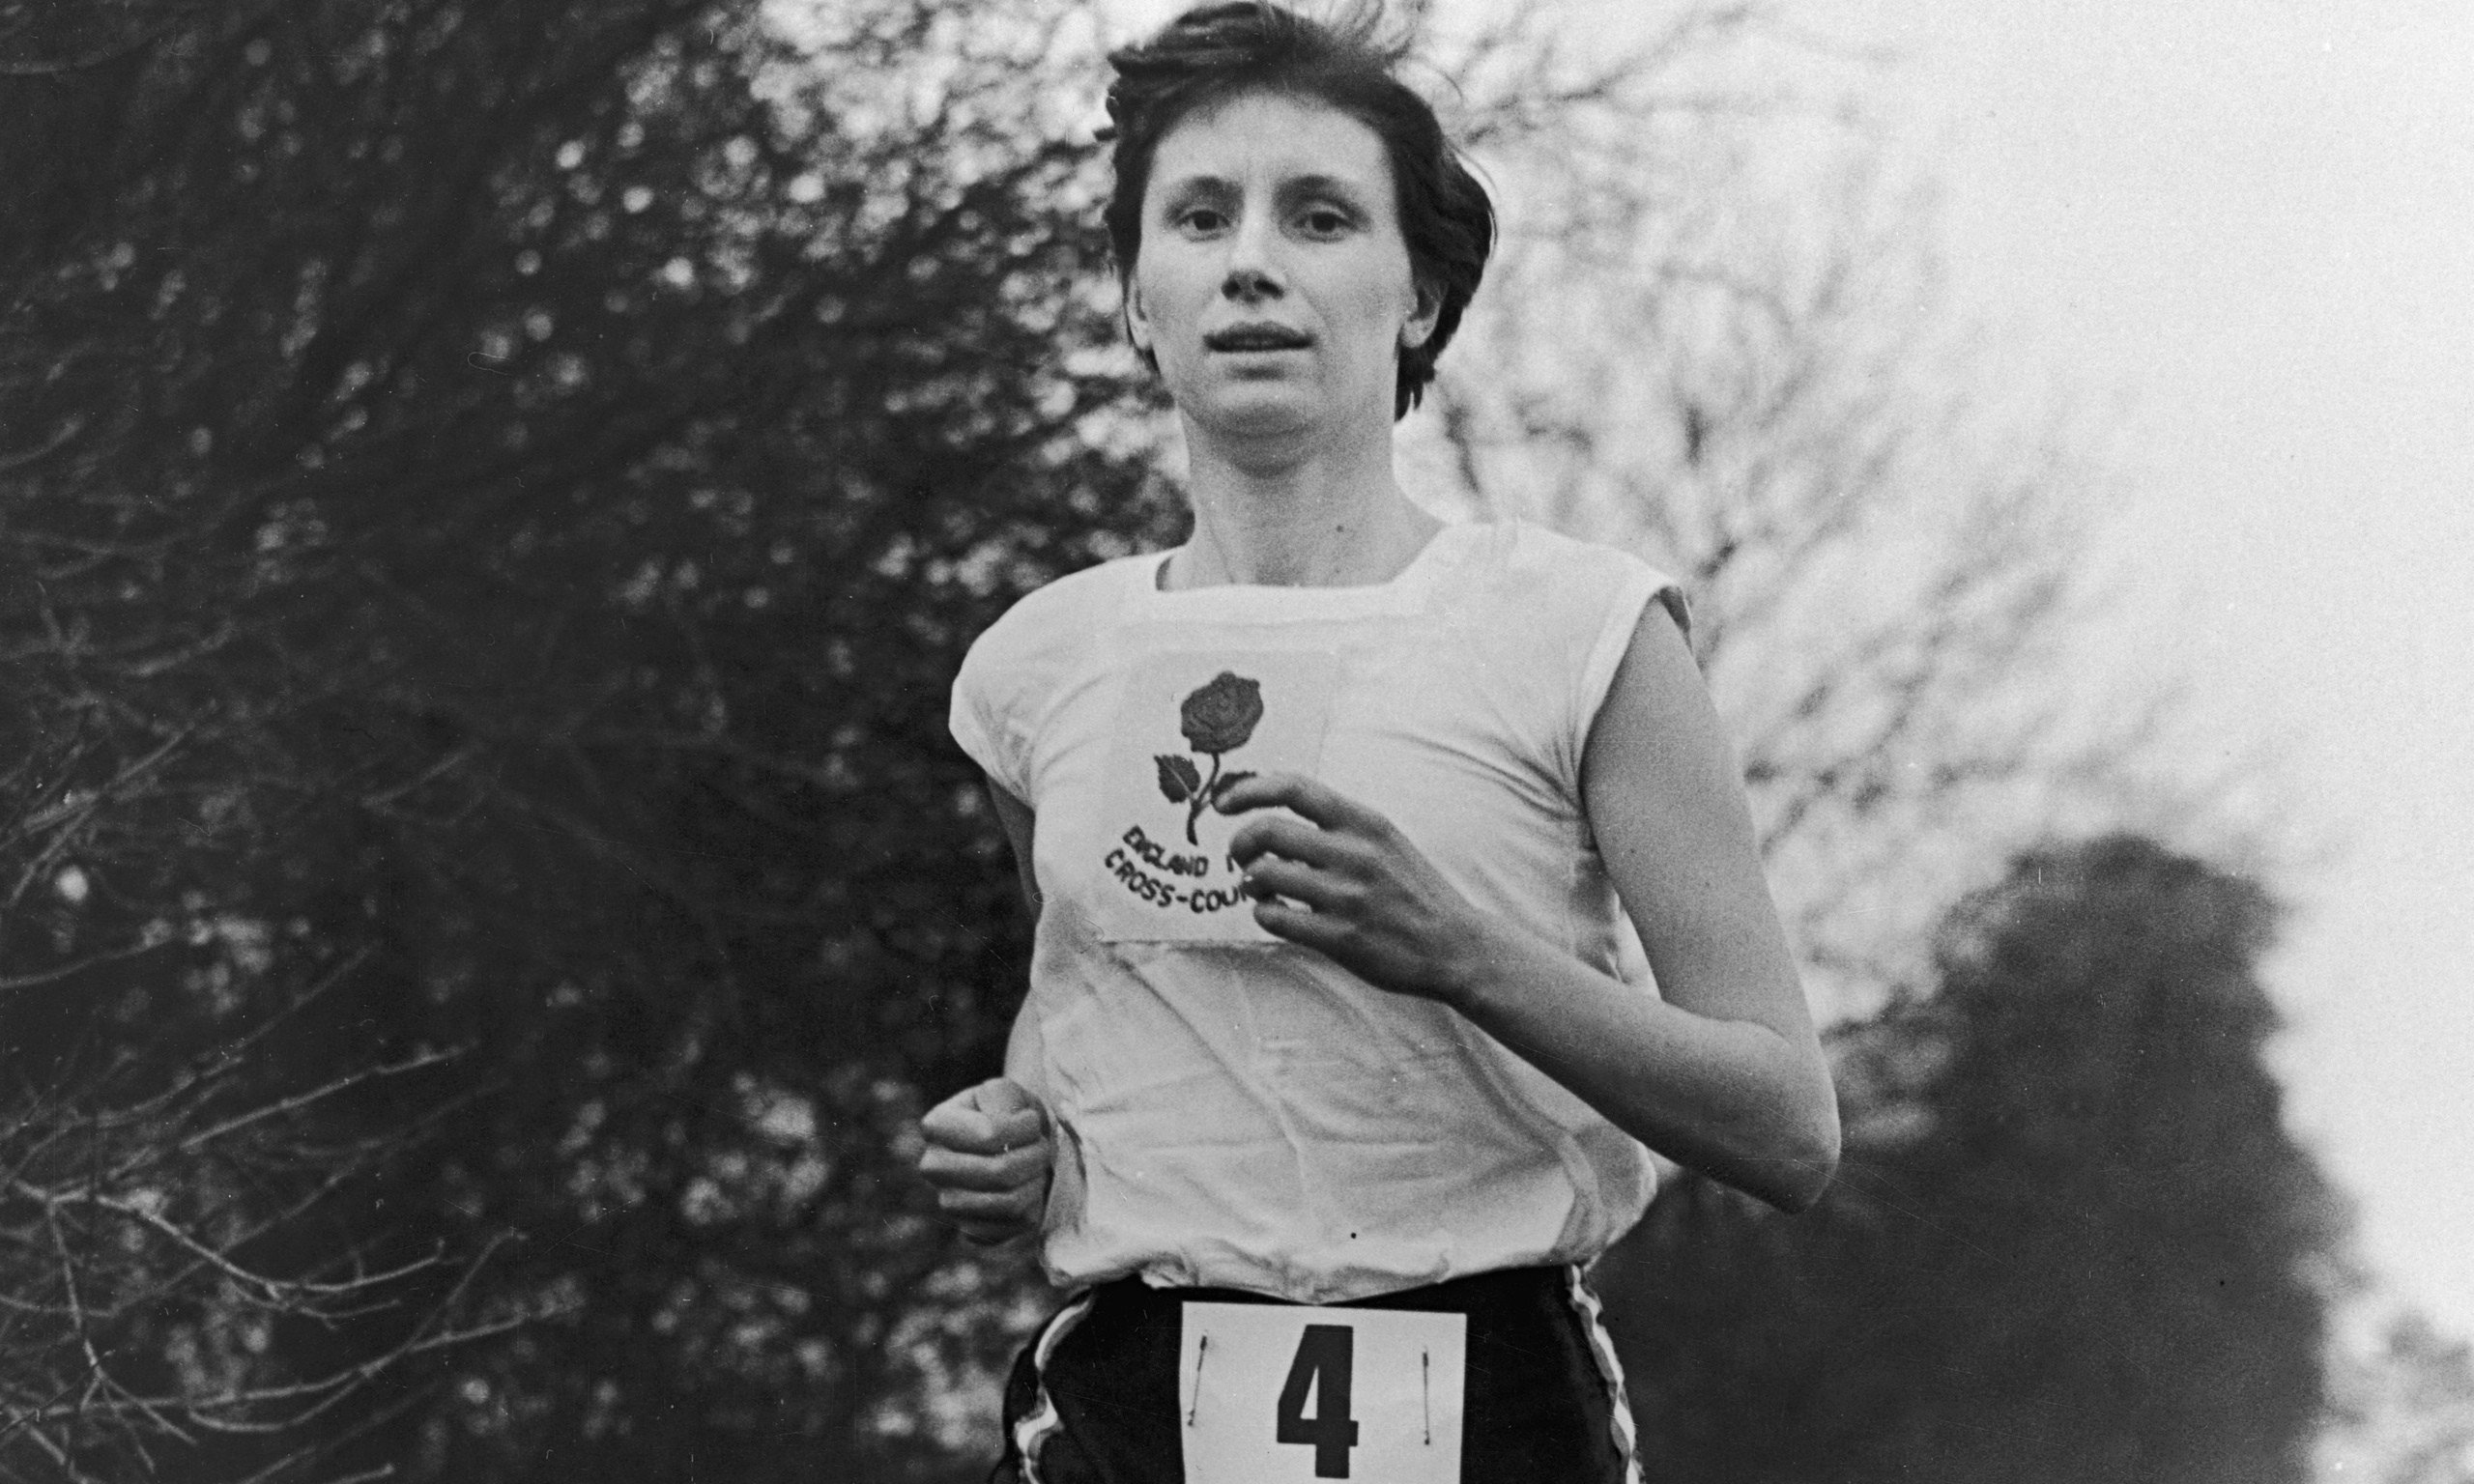 Diane Leather Ran Sub 5 minute Mile In 1954